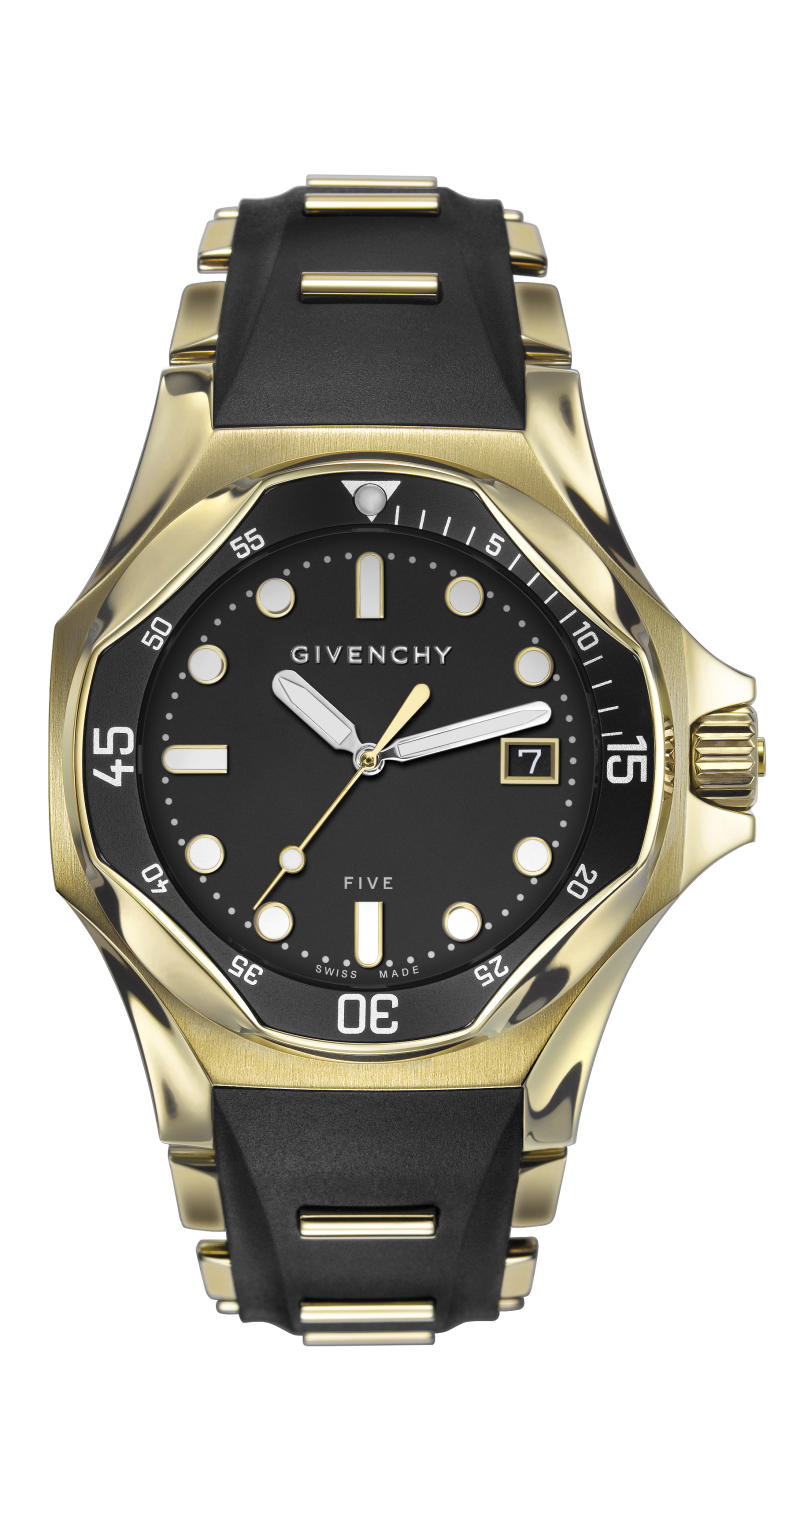 GIVENCHY FIVE SHARK GY100141S04_nw669o